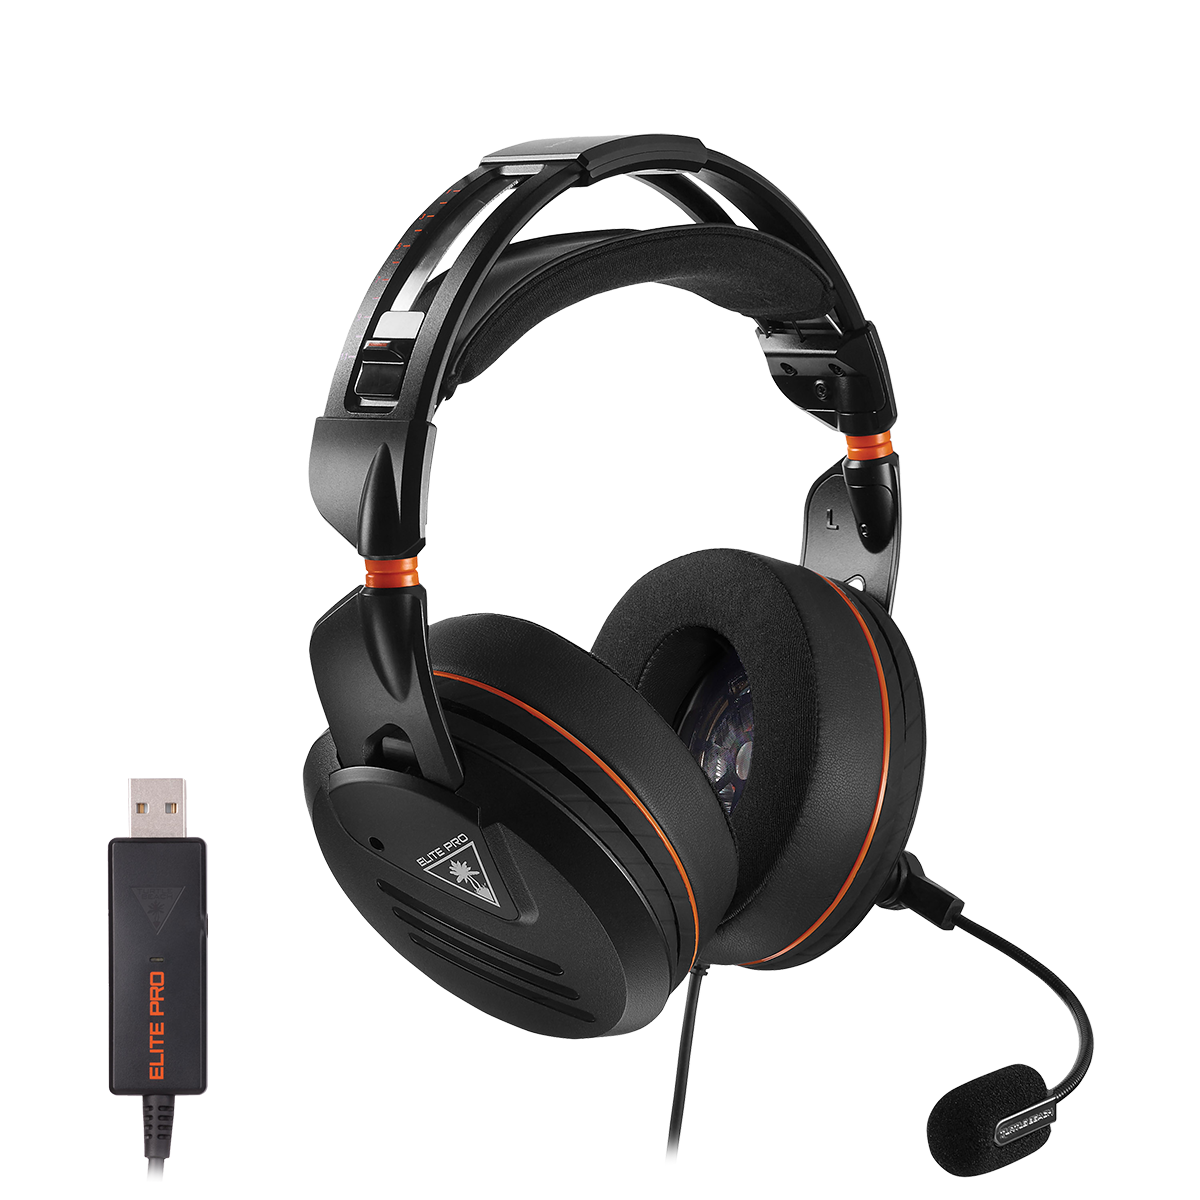 Elite Pro Pc Surround Sound Headset Turtle Beach Us Kabel Bc 50 Mm Hover To Zoom